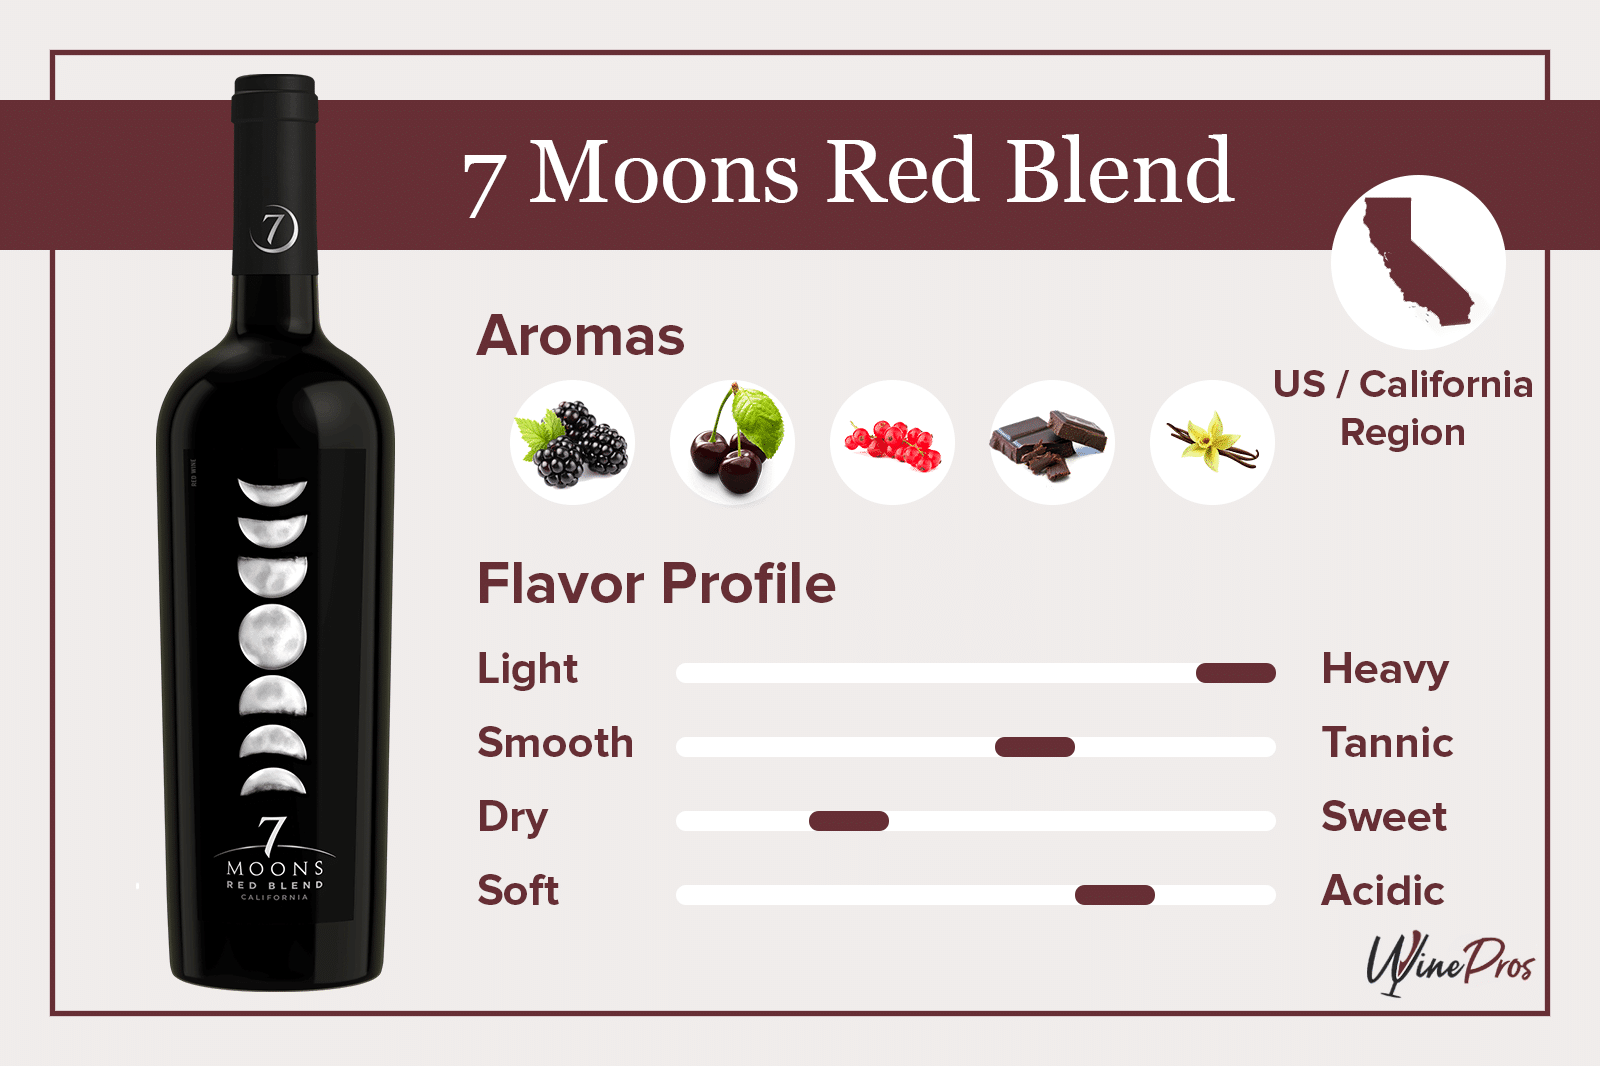 7 Moons Red Blend Review (2021)